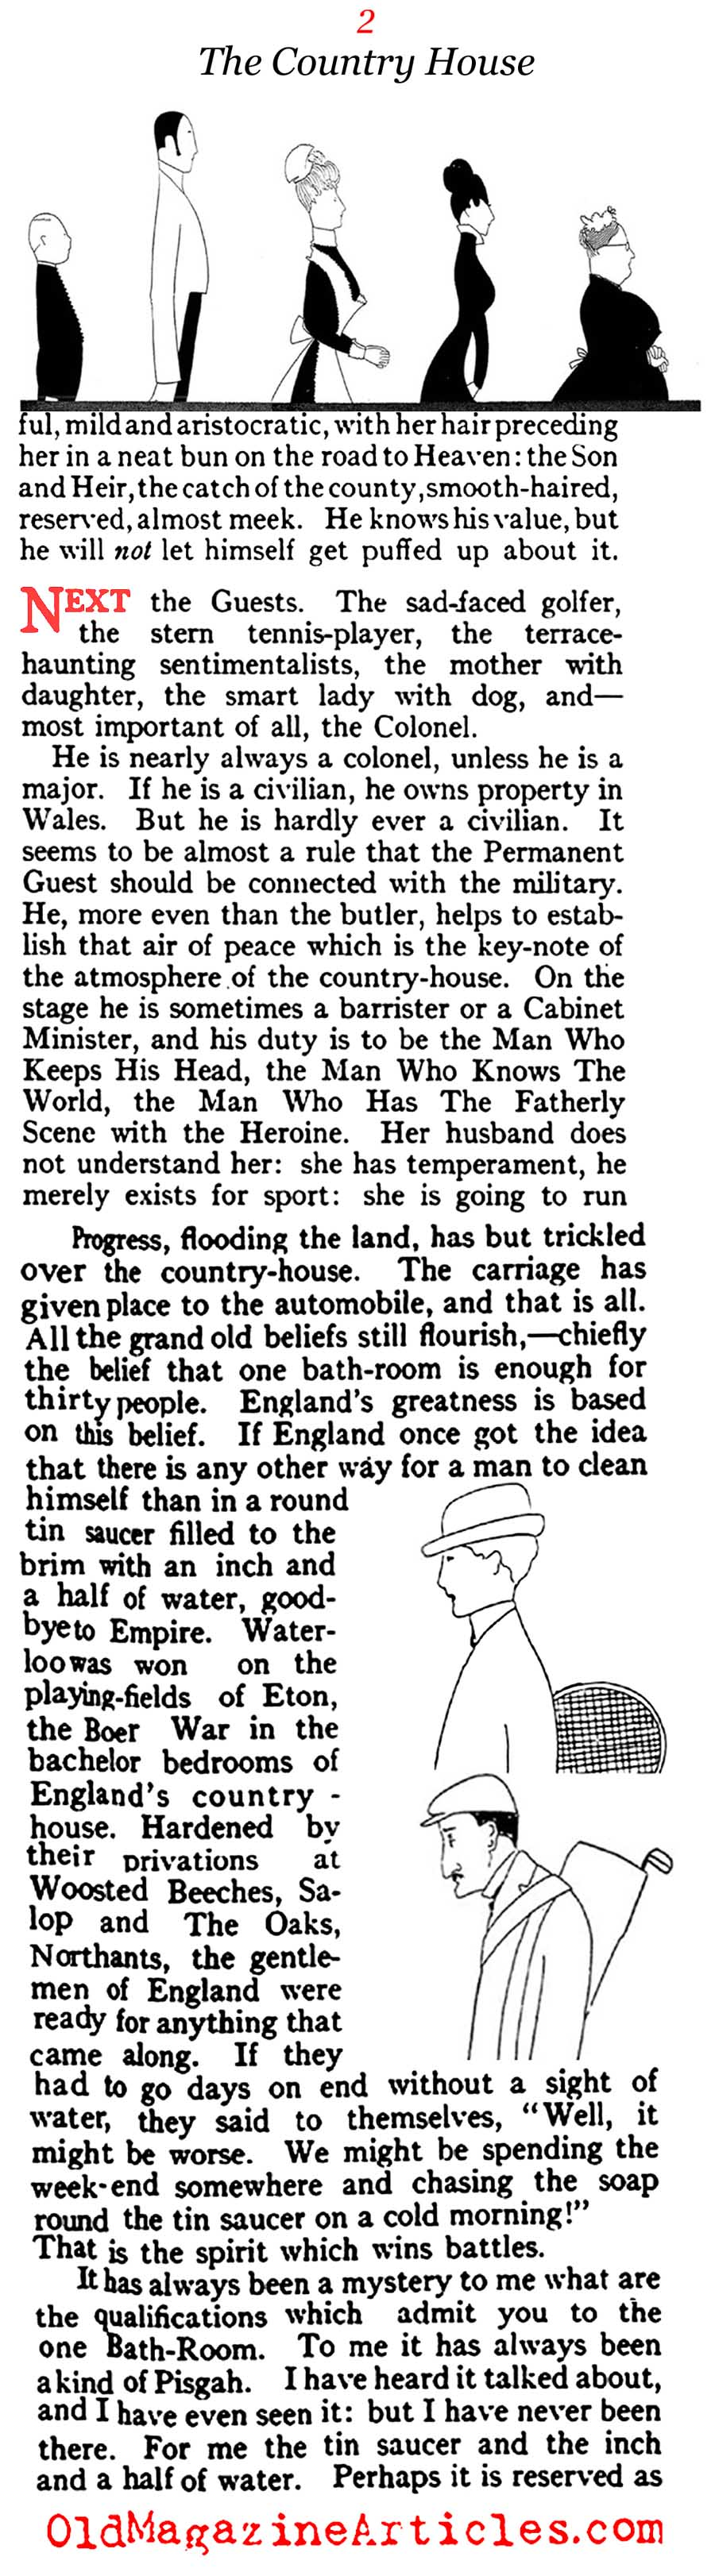 The English Country House: What Good Is It?  (Vogue Magazine, 1914)